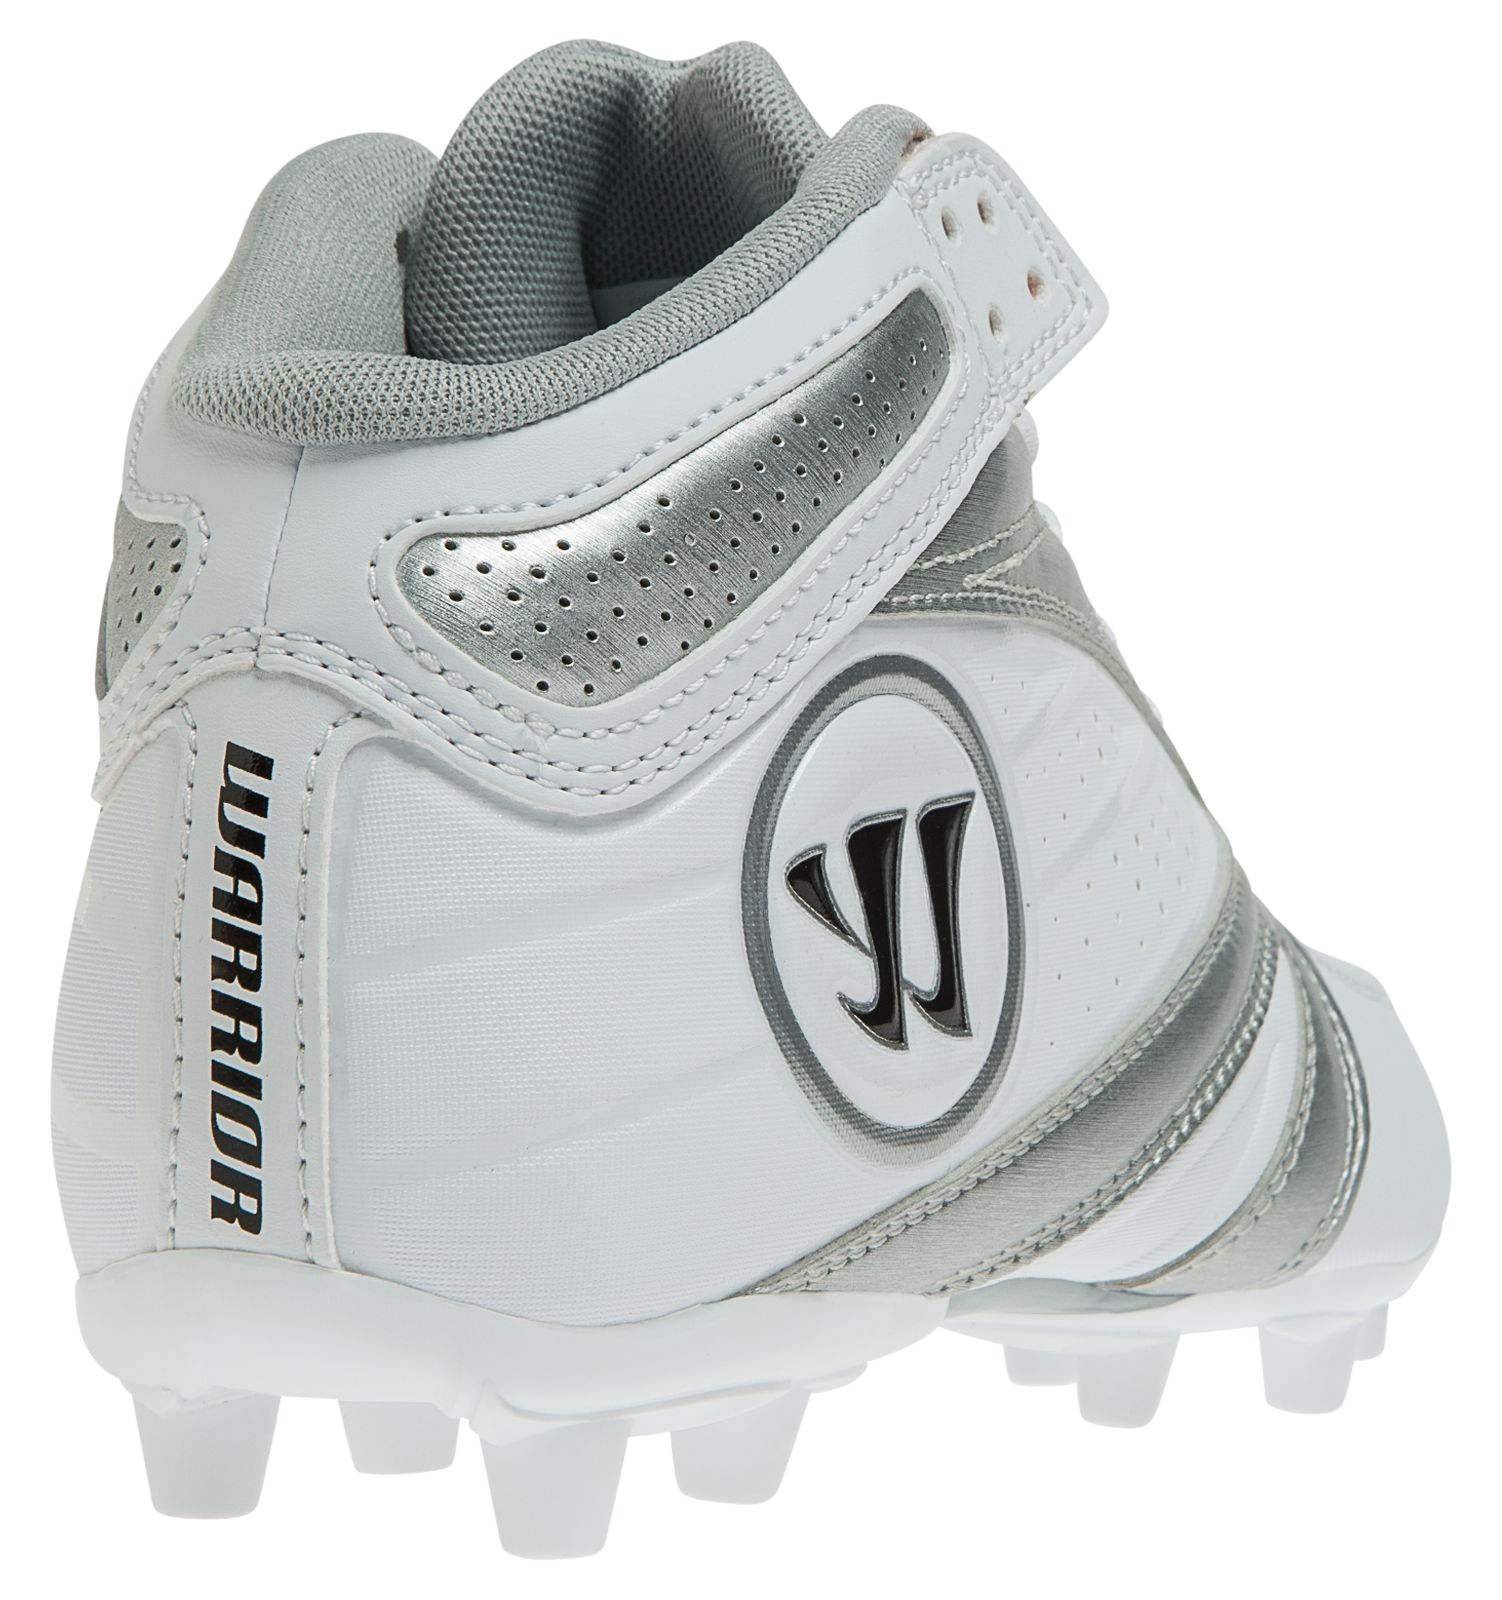 5a0a15e7b Warrior - Second Degree 3.0 Cleat